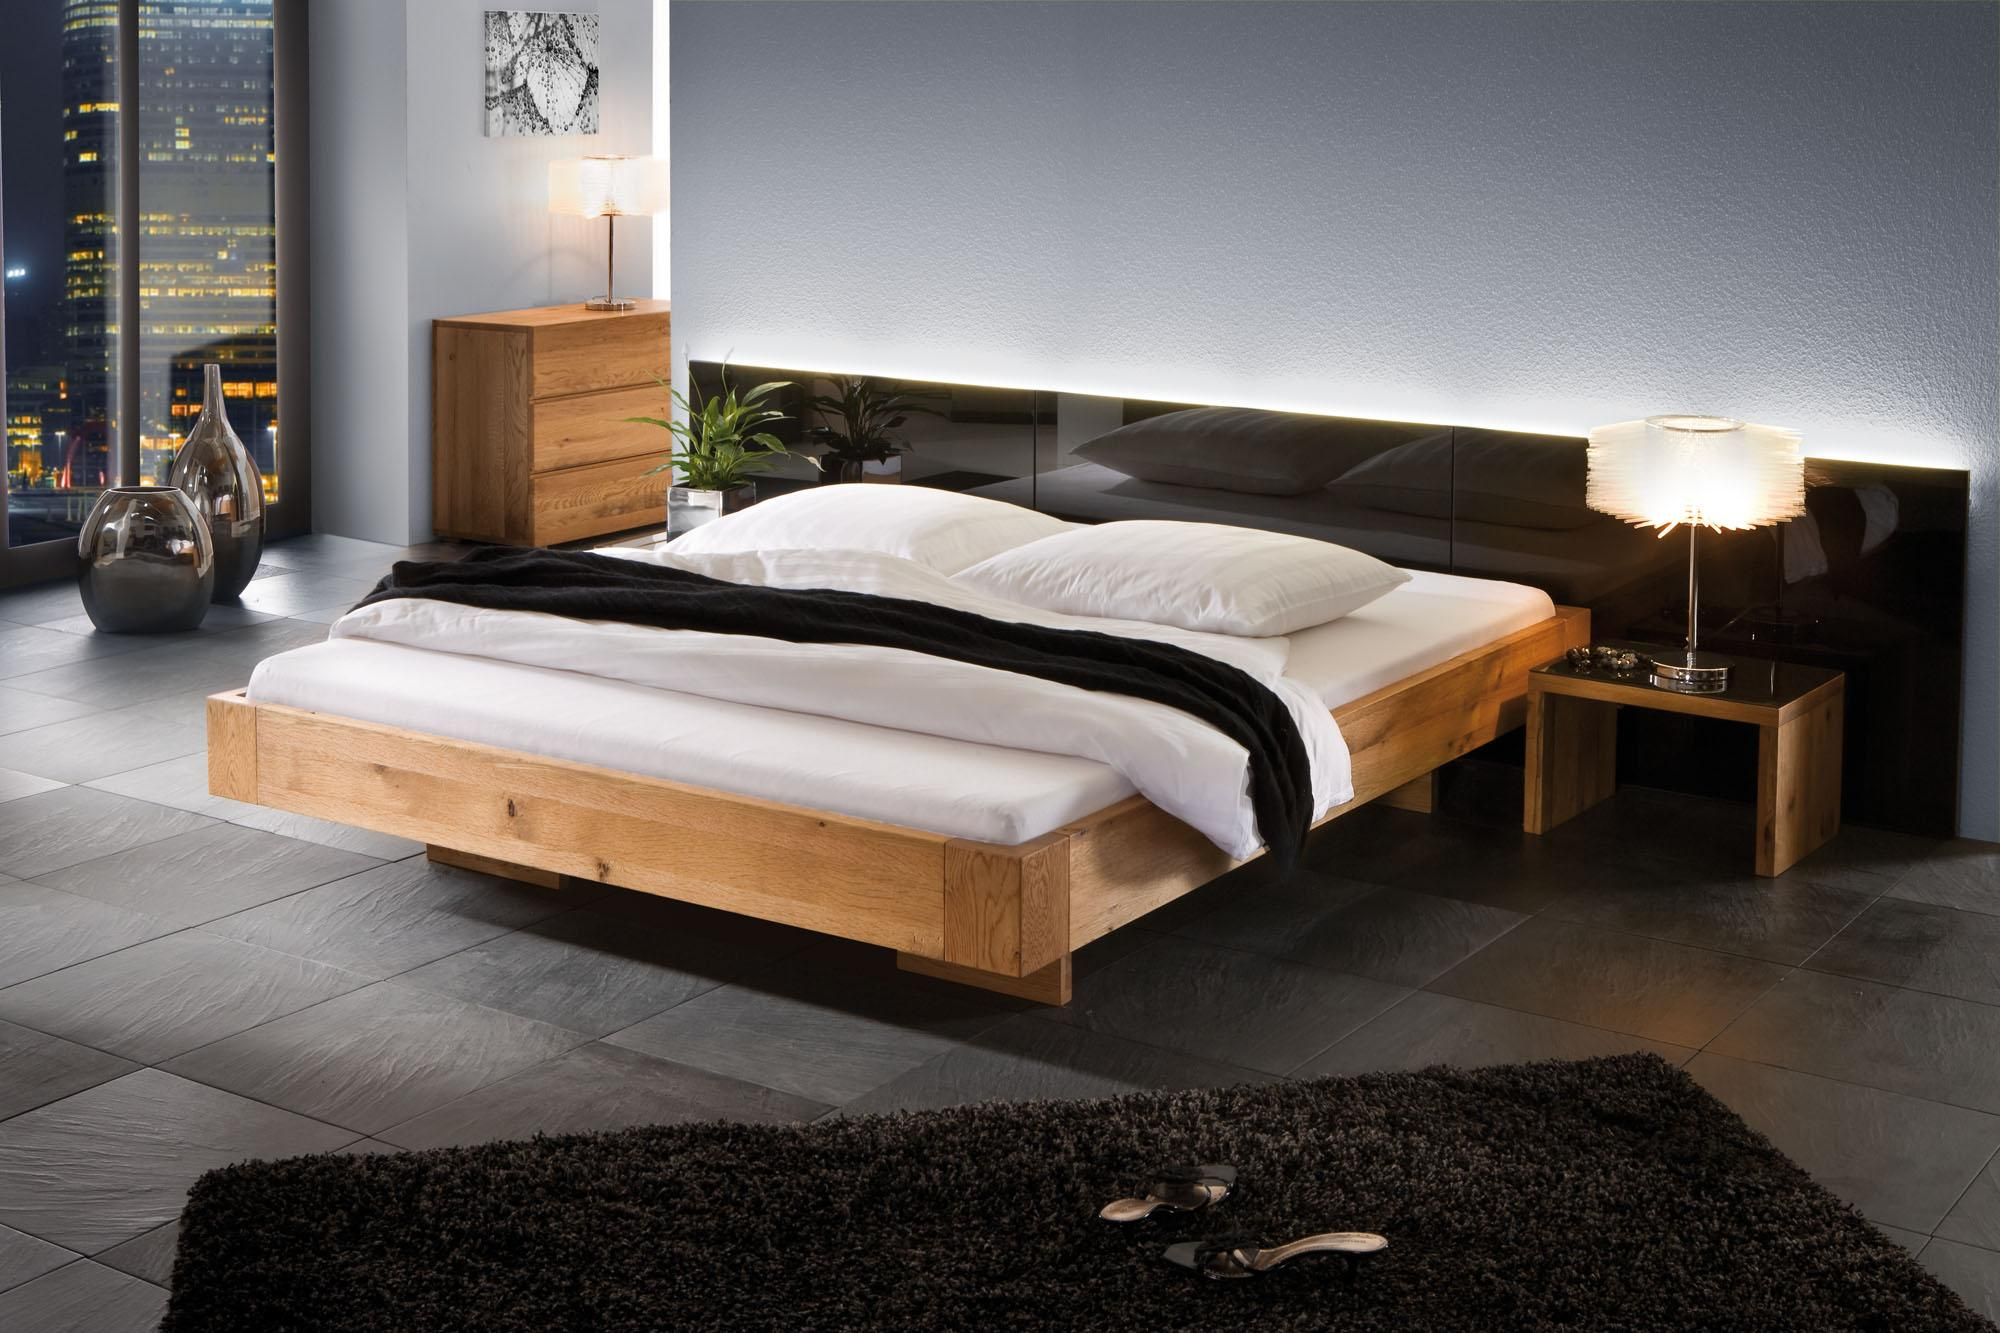 gestell und lattenrahmen kieppe. Black Bedroom Furniture Sets. Home Design Ideas